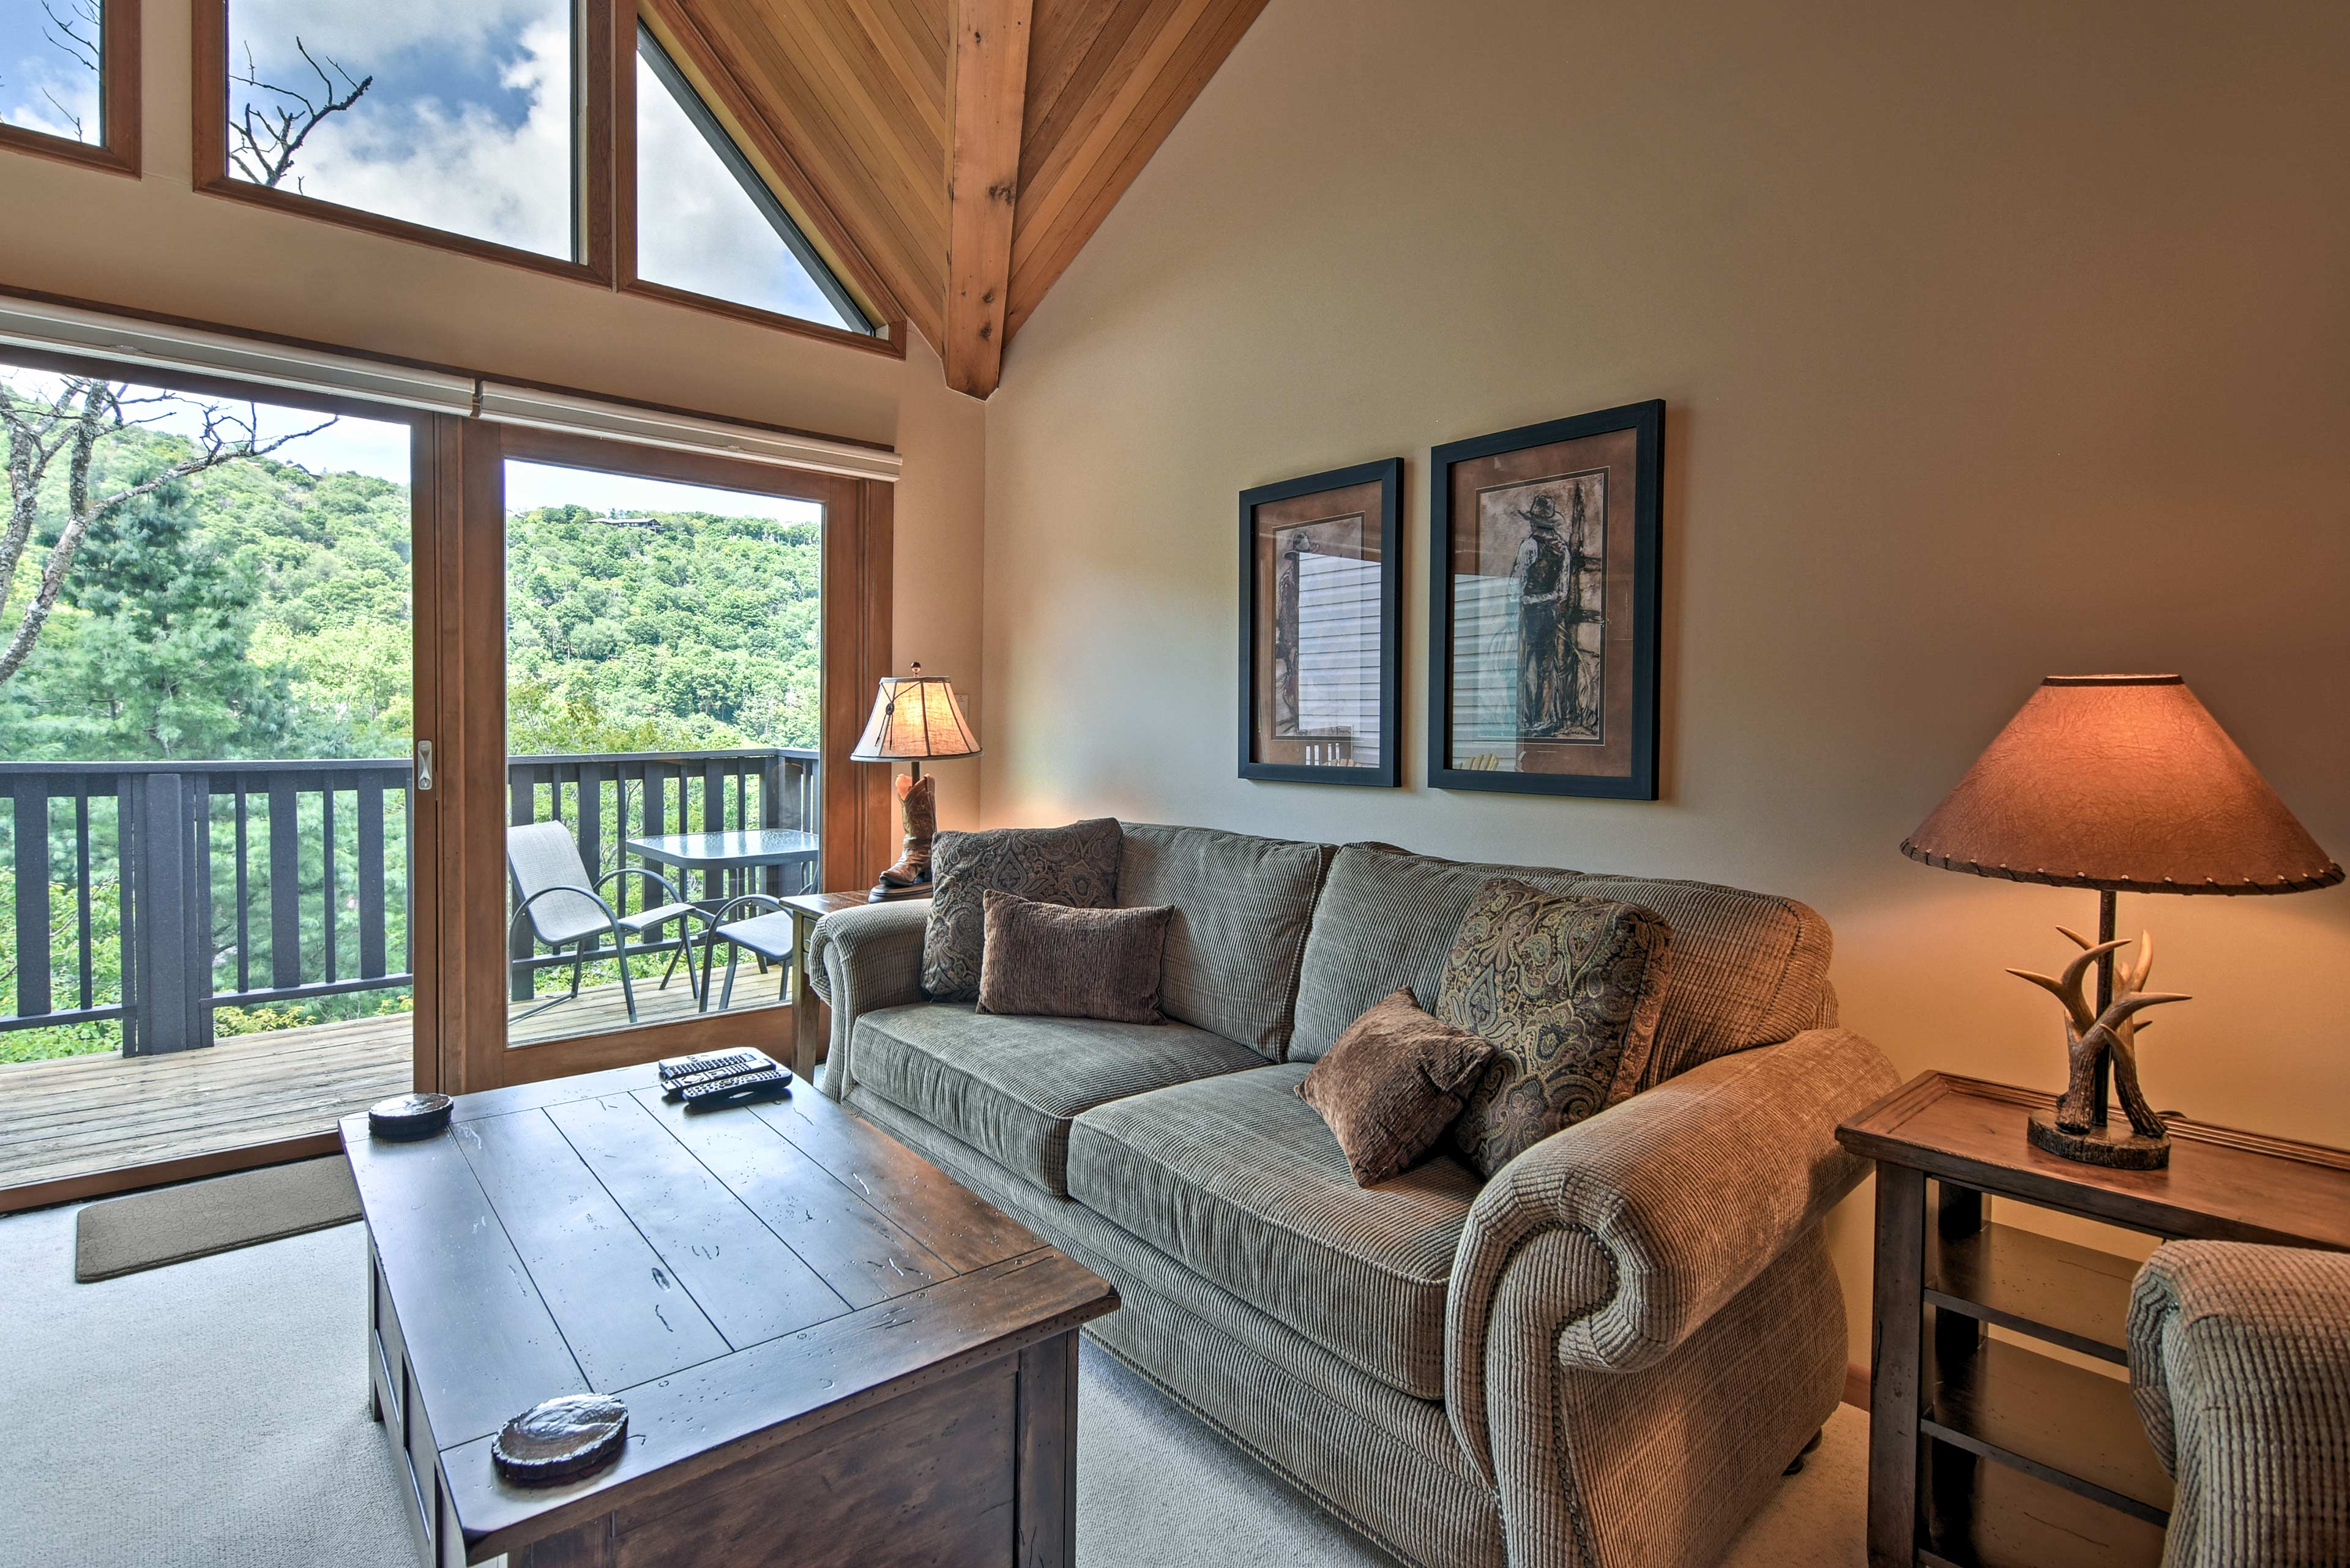 Knotty pine walls and charming mountain decor complete the look inside.